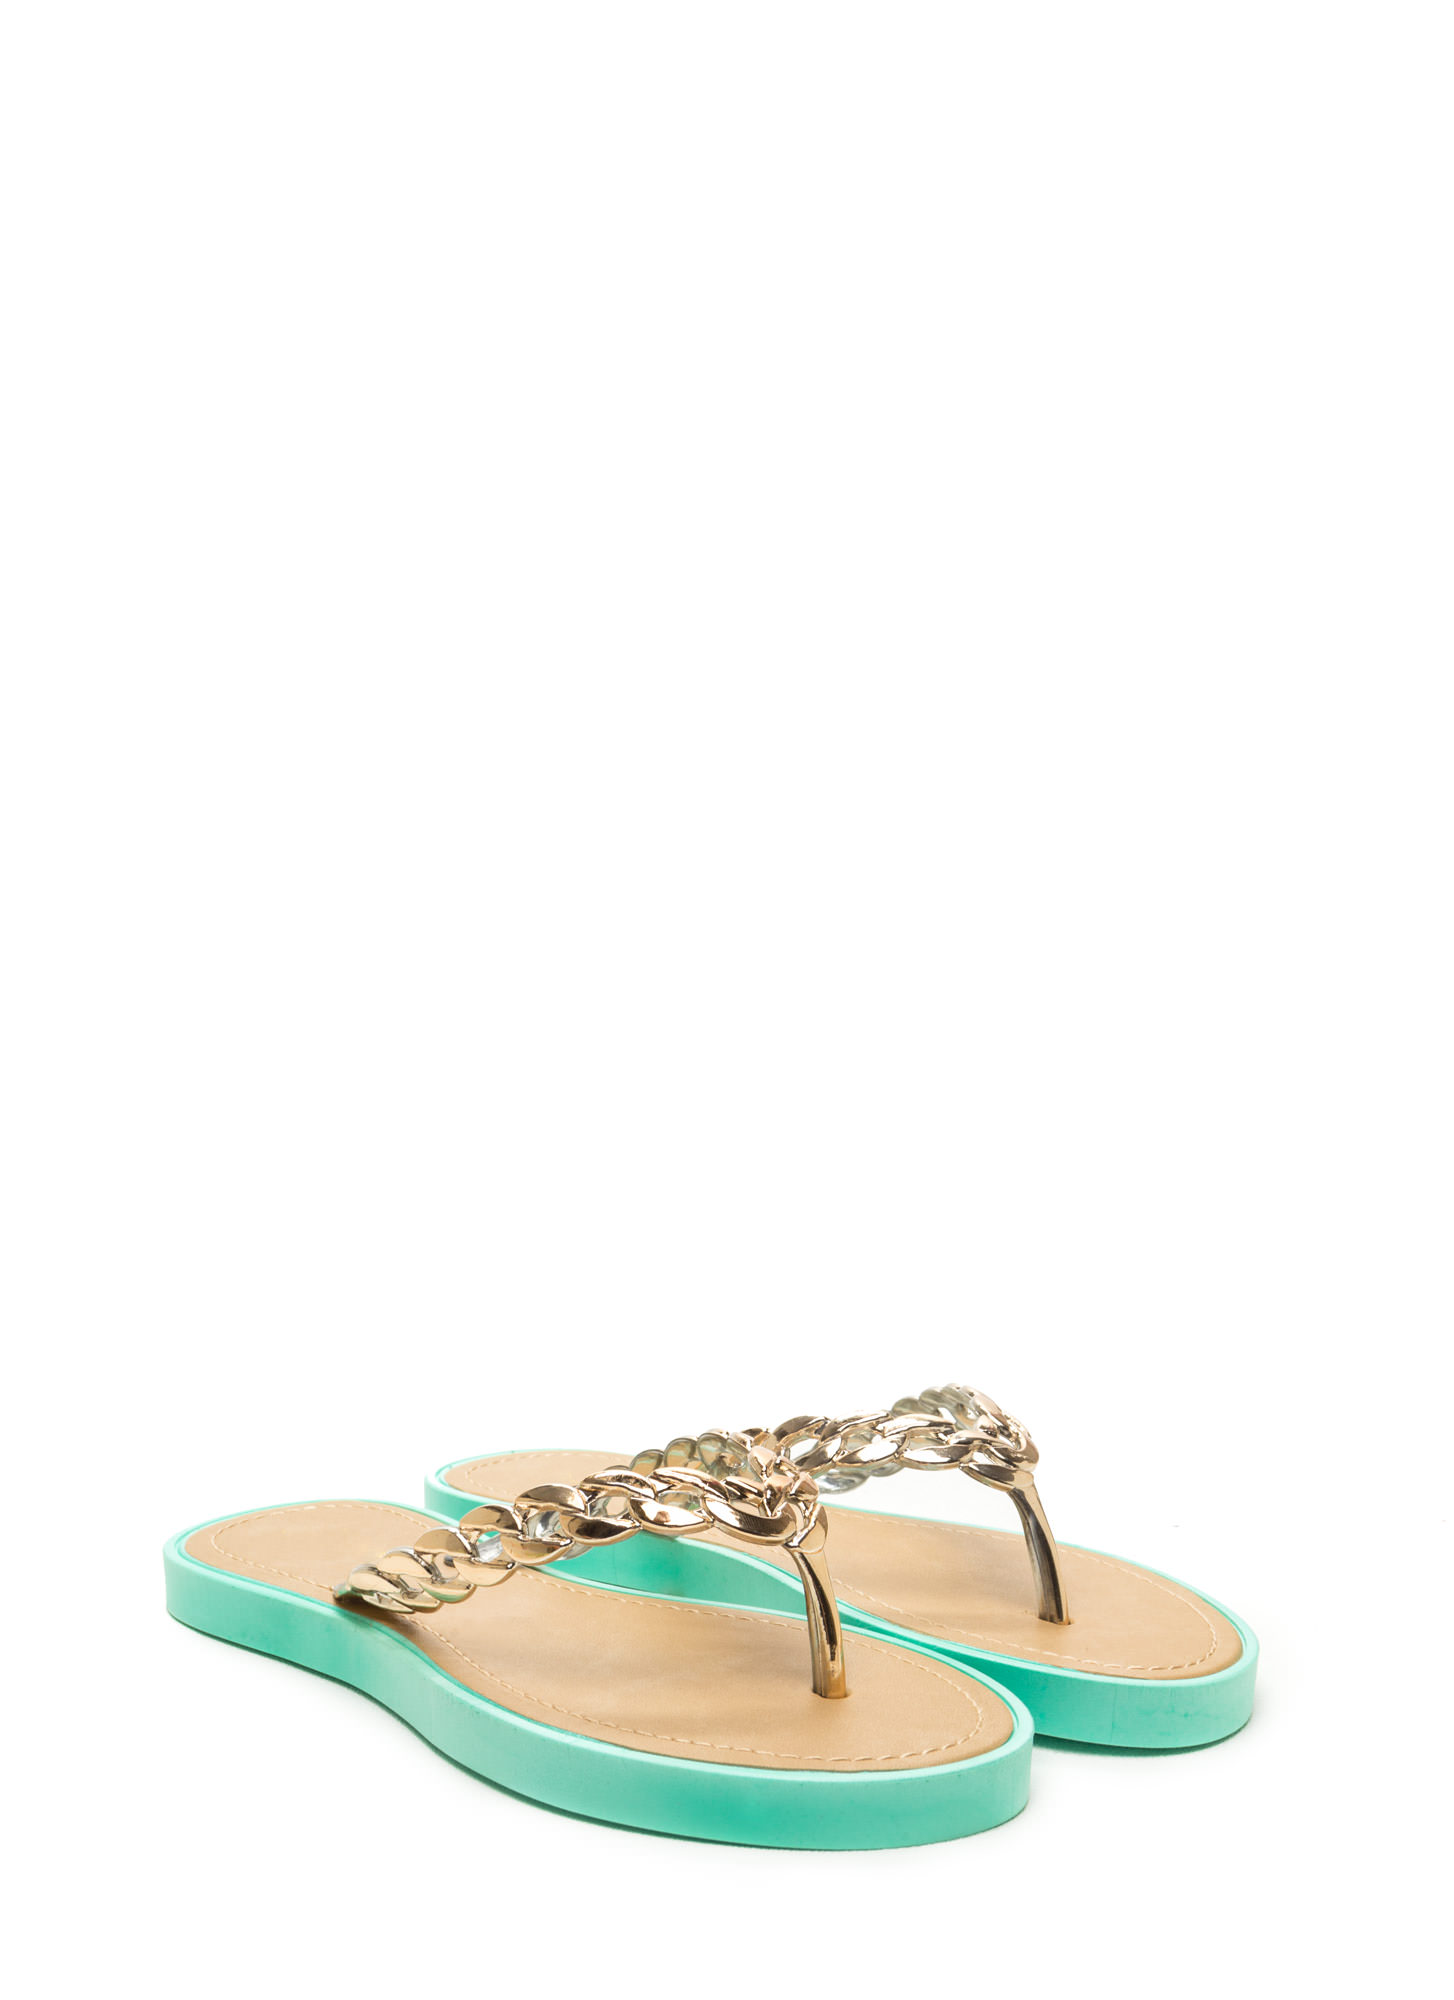 Chain Together Jelly Thong Sandals MINT